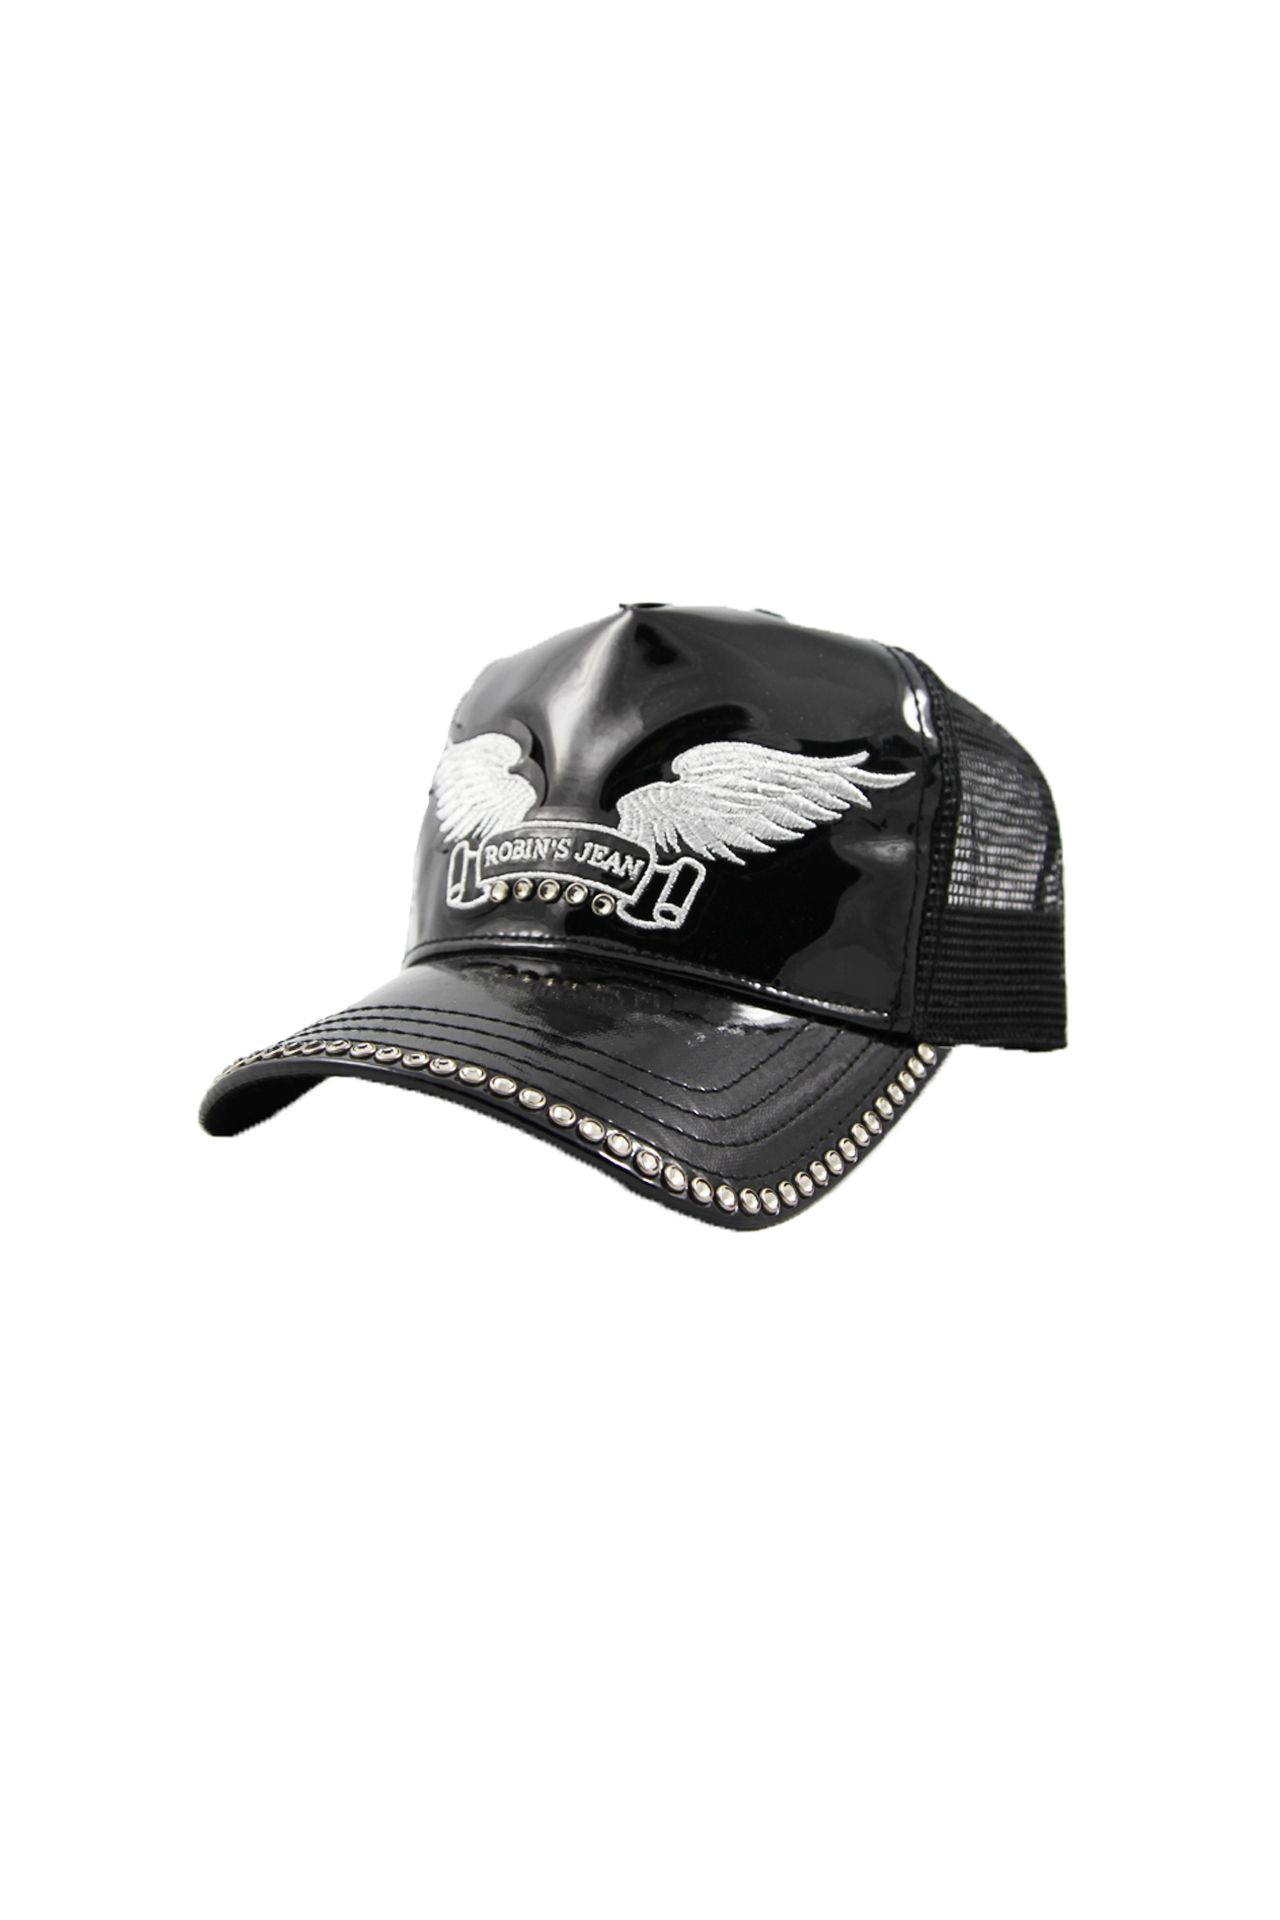 BLACK PATENT LEATHER CAP STUDDED